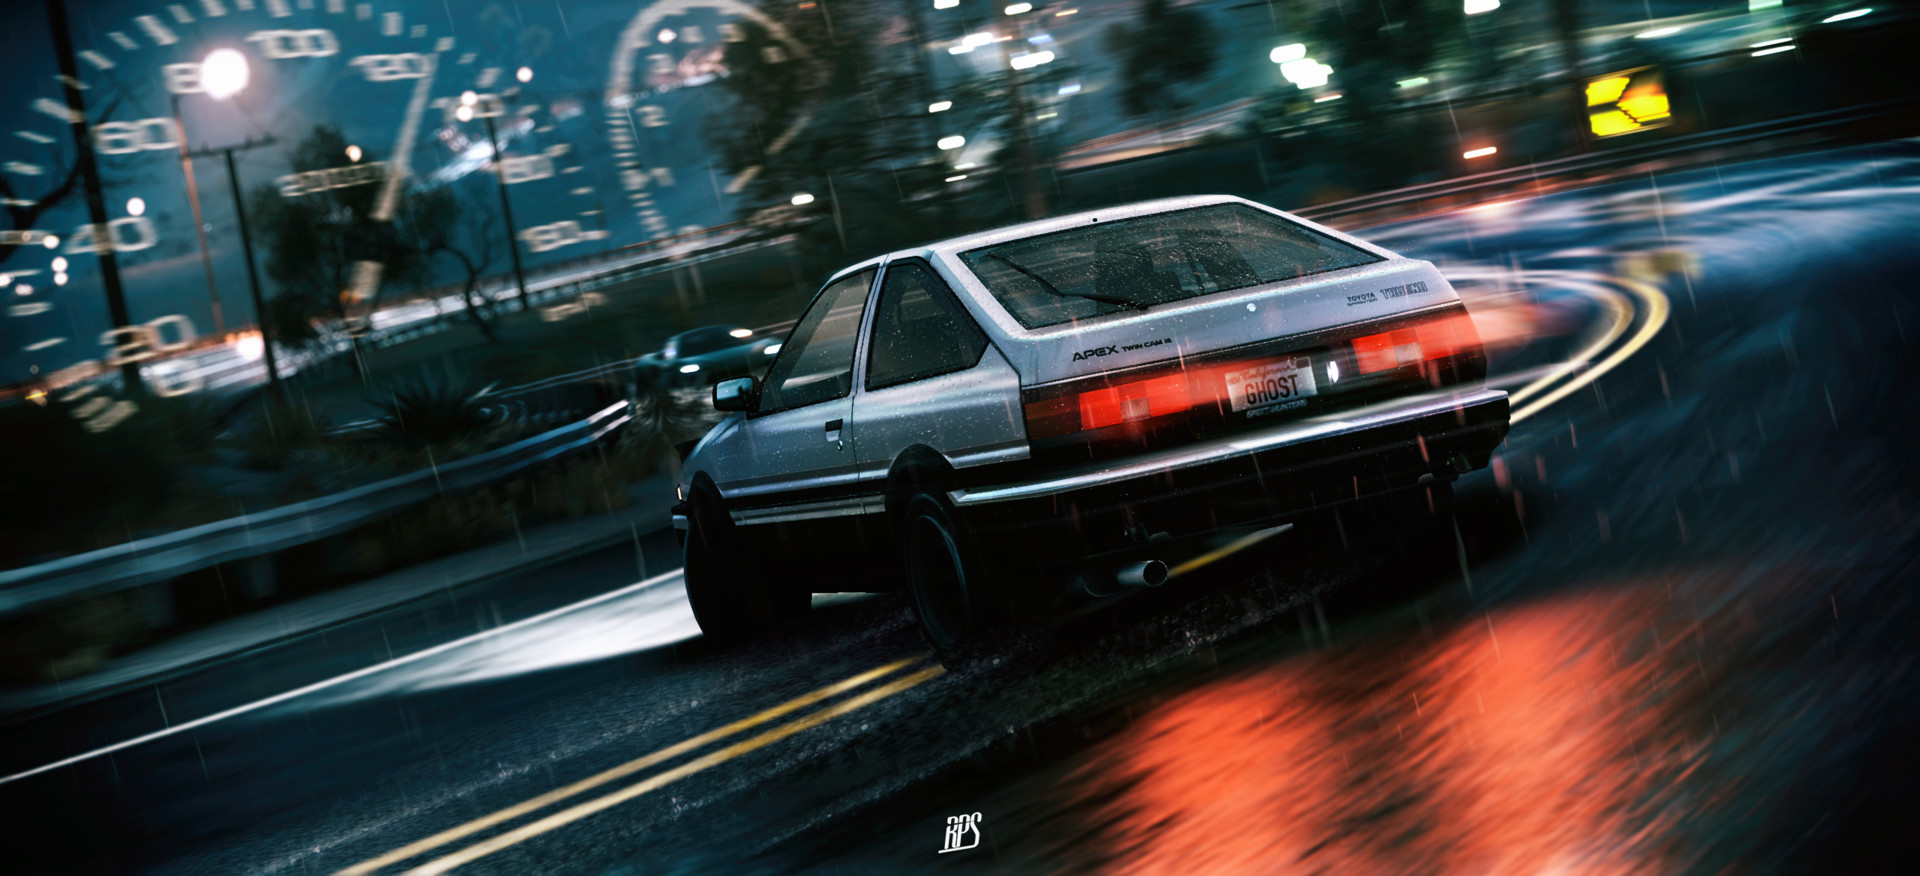 Artstation akina 39 s ghost kirill weinberg - Ae86 initial d wallpaper ...